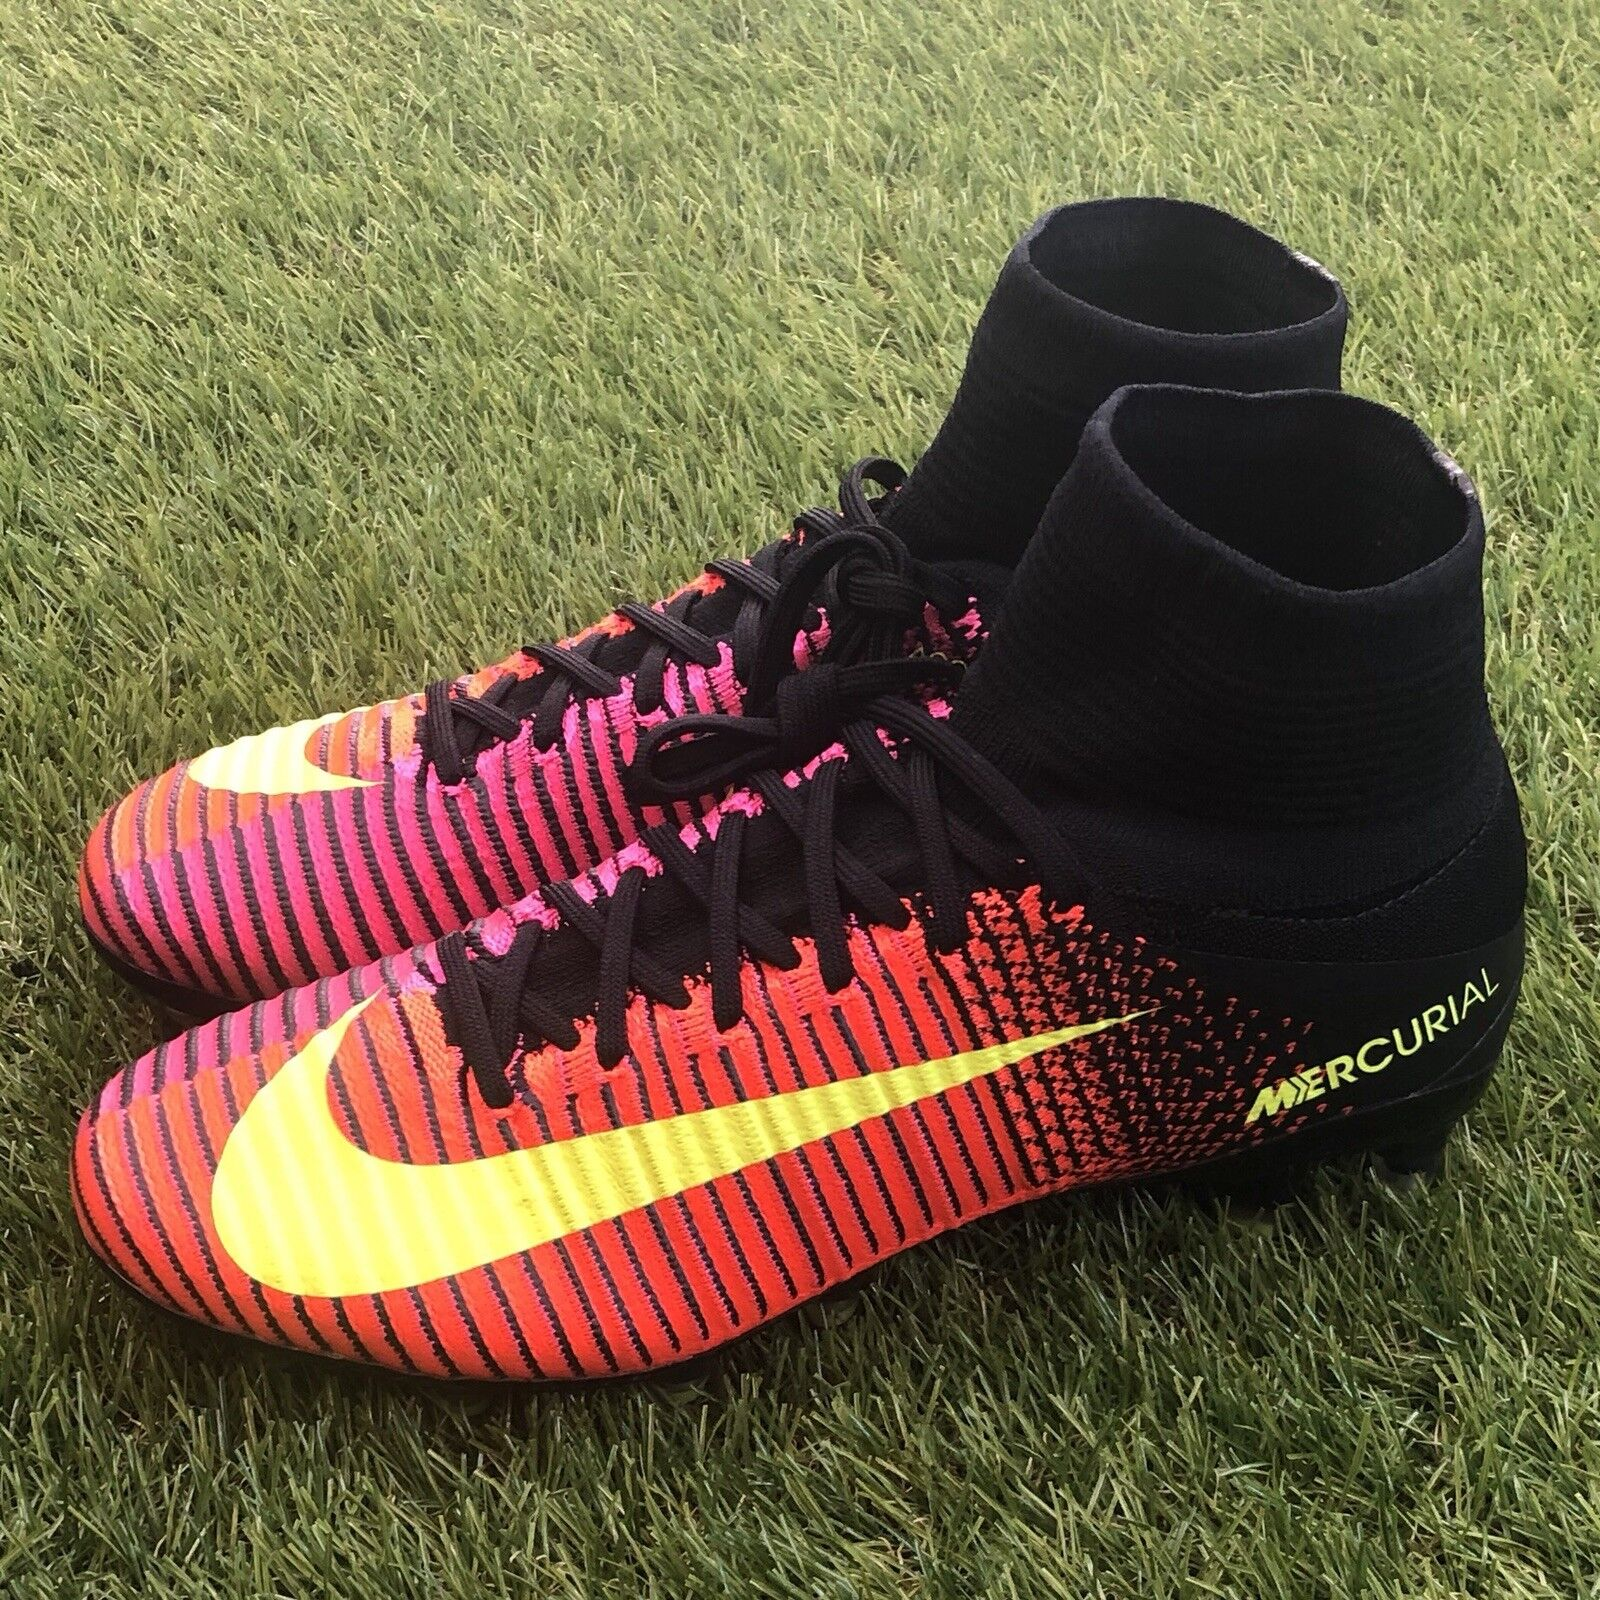 New Nike Mercurial Superfly V AG Pro DF Size 7 Soccer Cleats Black 831955-870